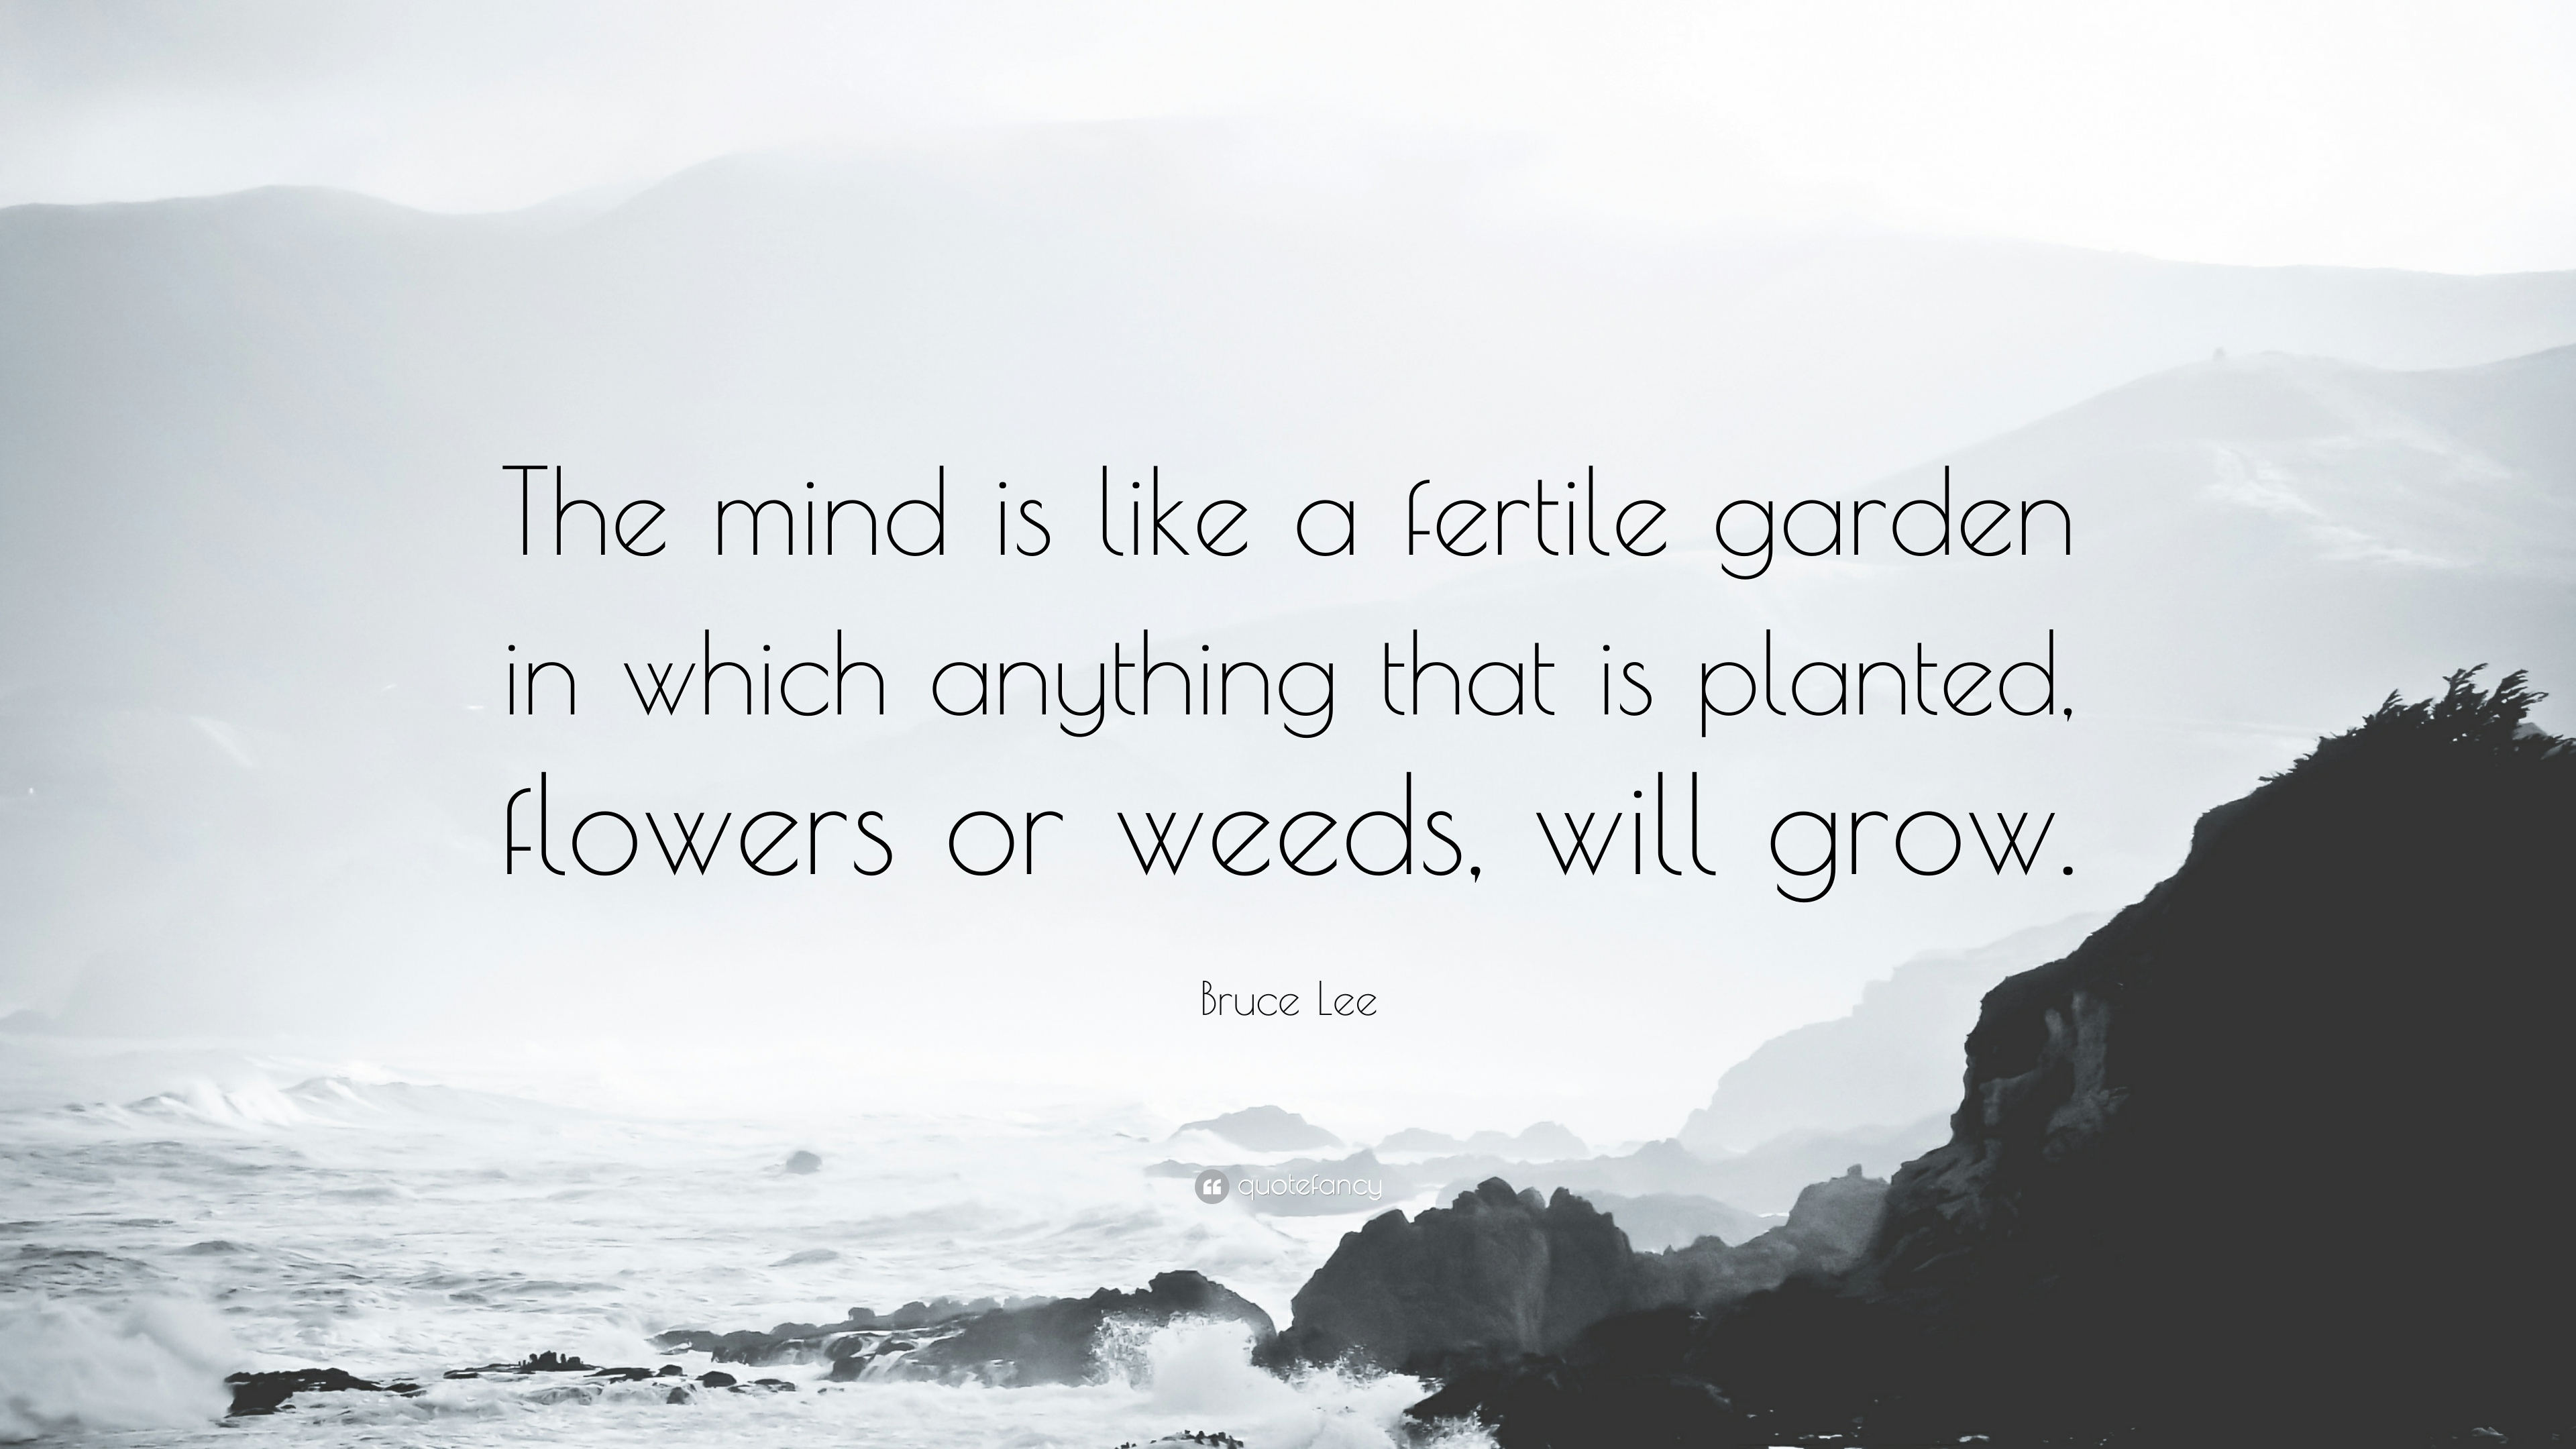 Bruce Lee Quote The mind is like a fertile garden in which